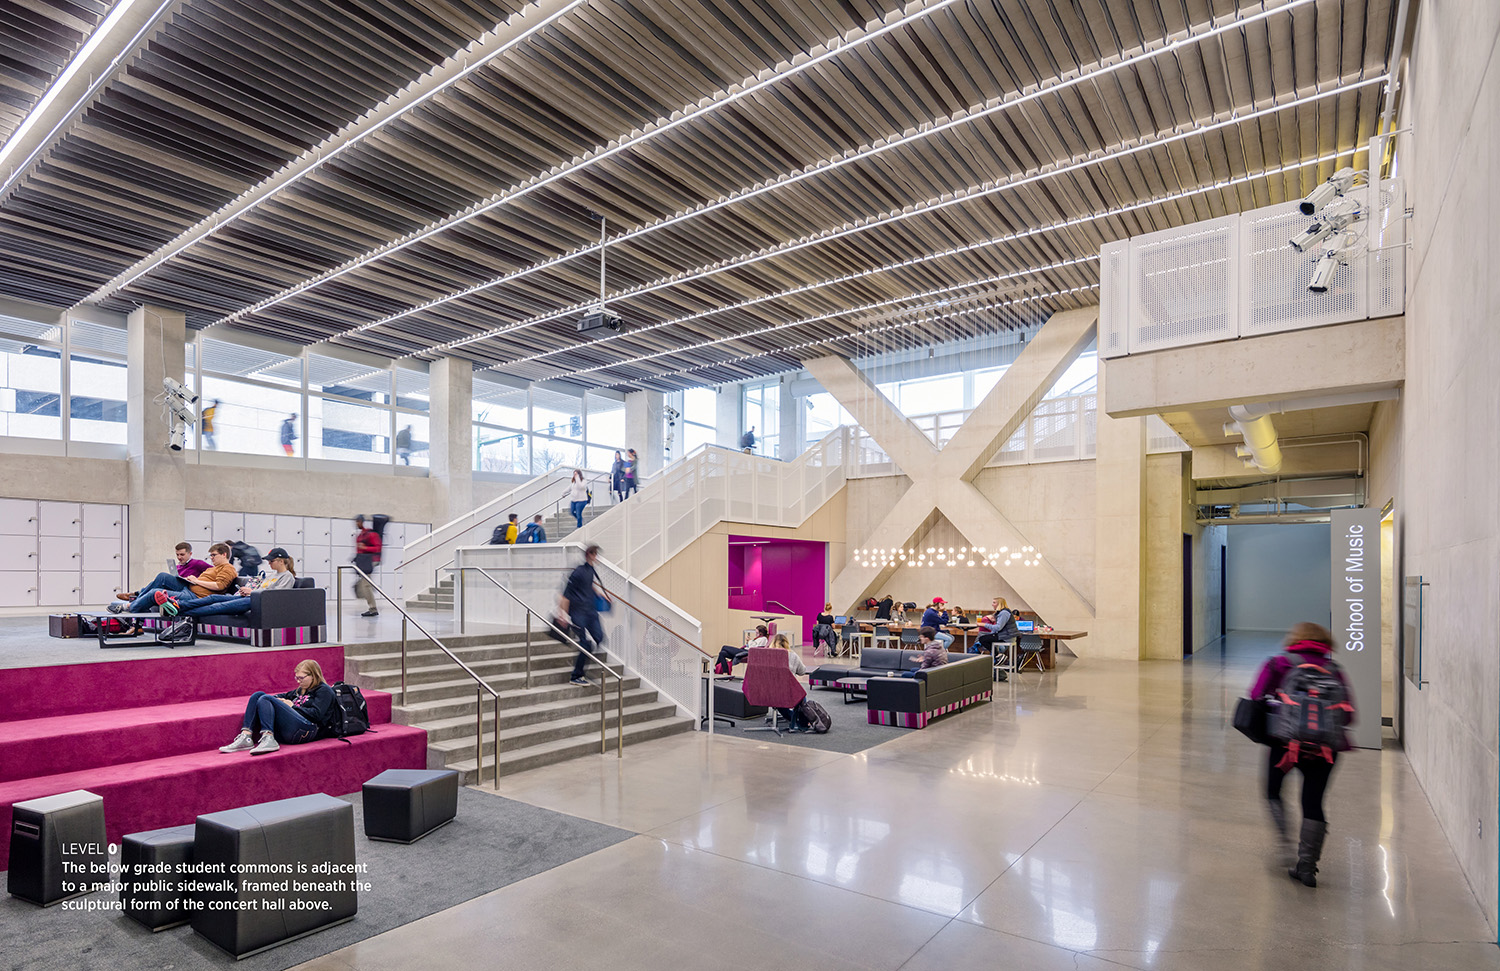 The below grade student commons is adjacent to a major public sidewalk, framed beneath the sculptural form of the concert hall above. Tim Griffith}